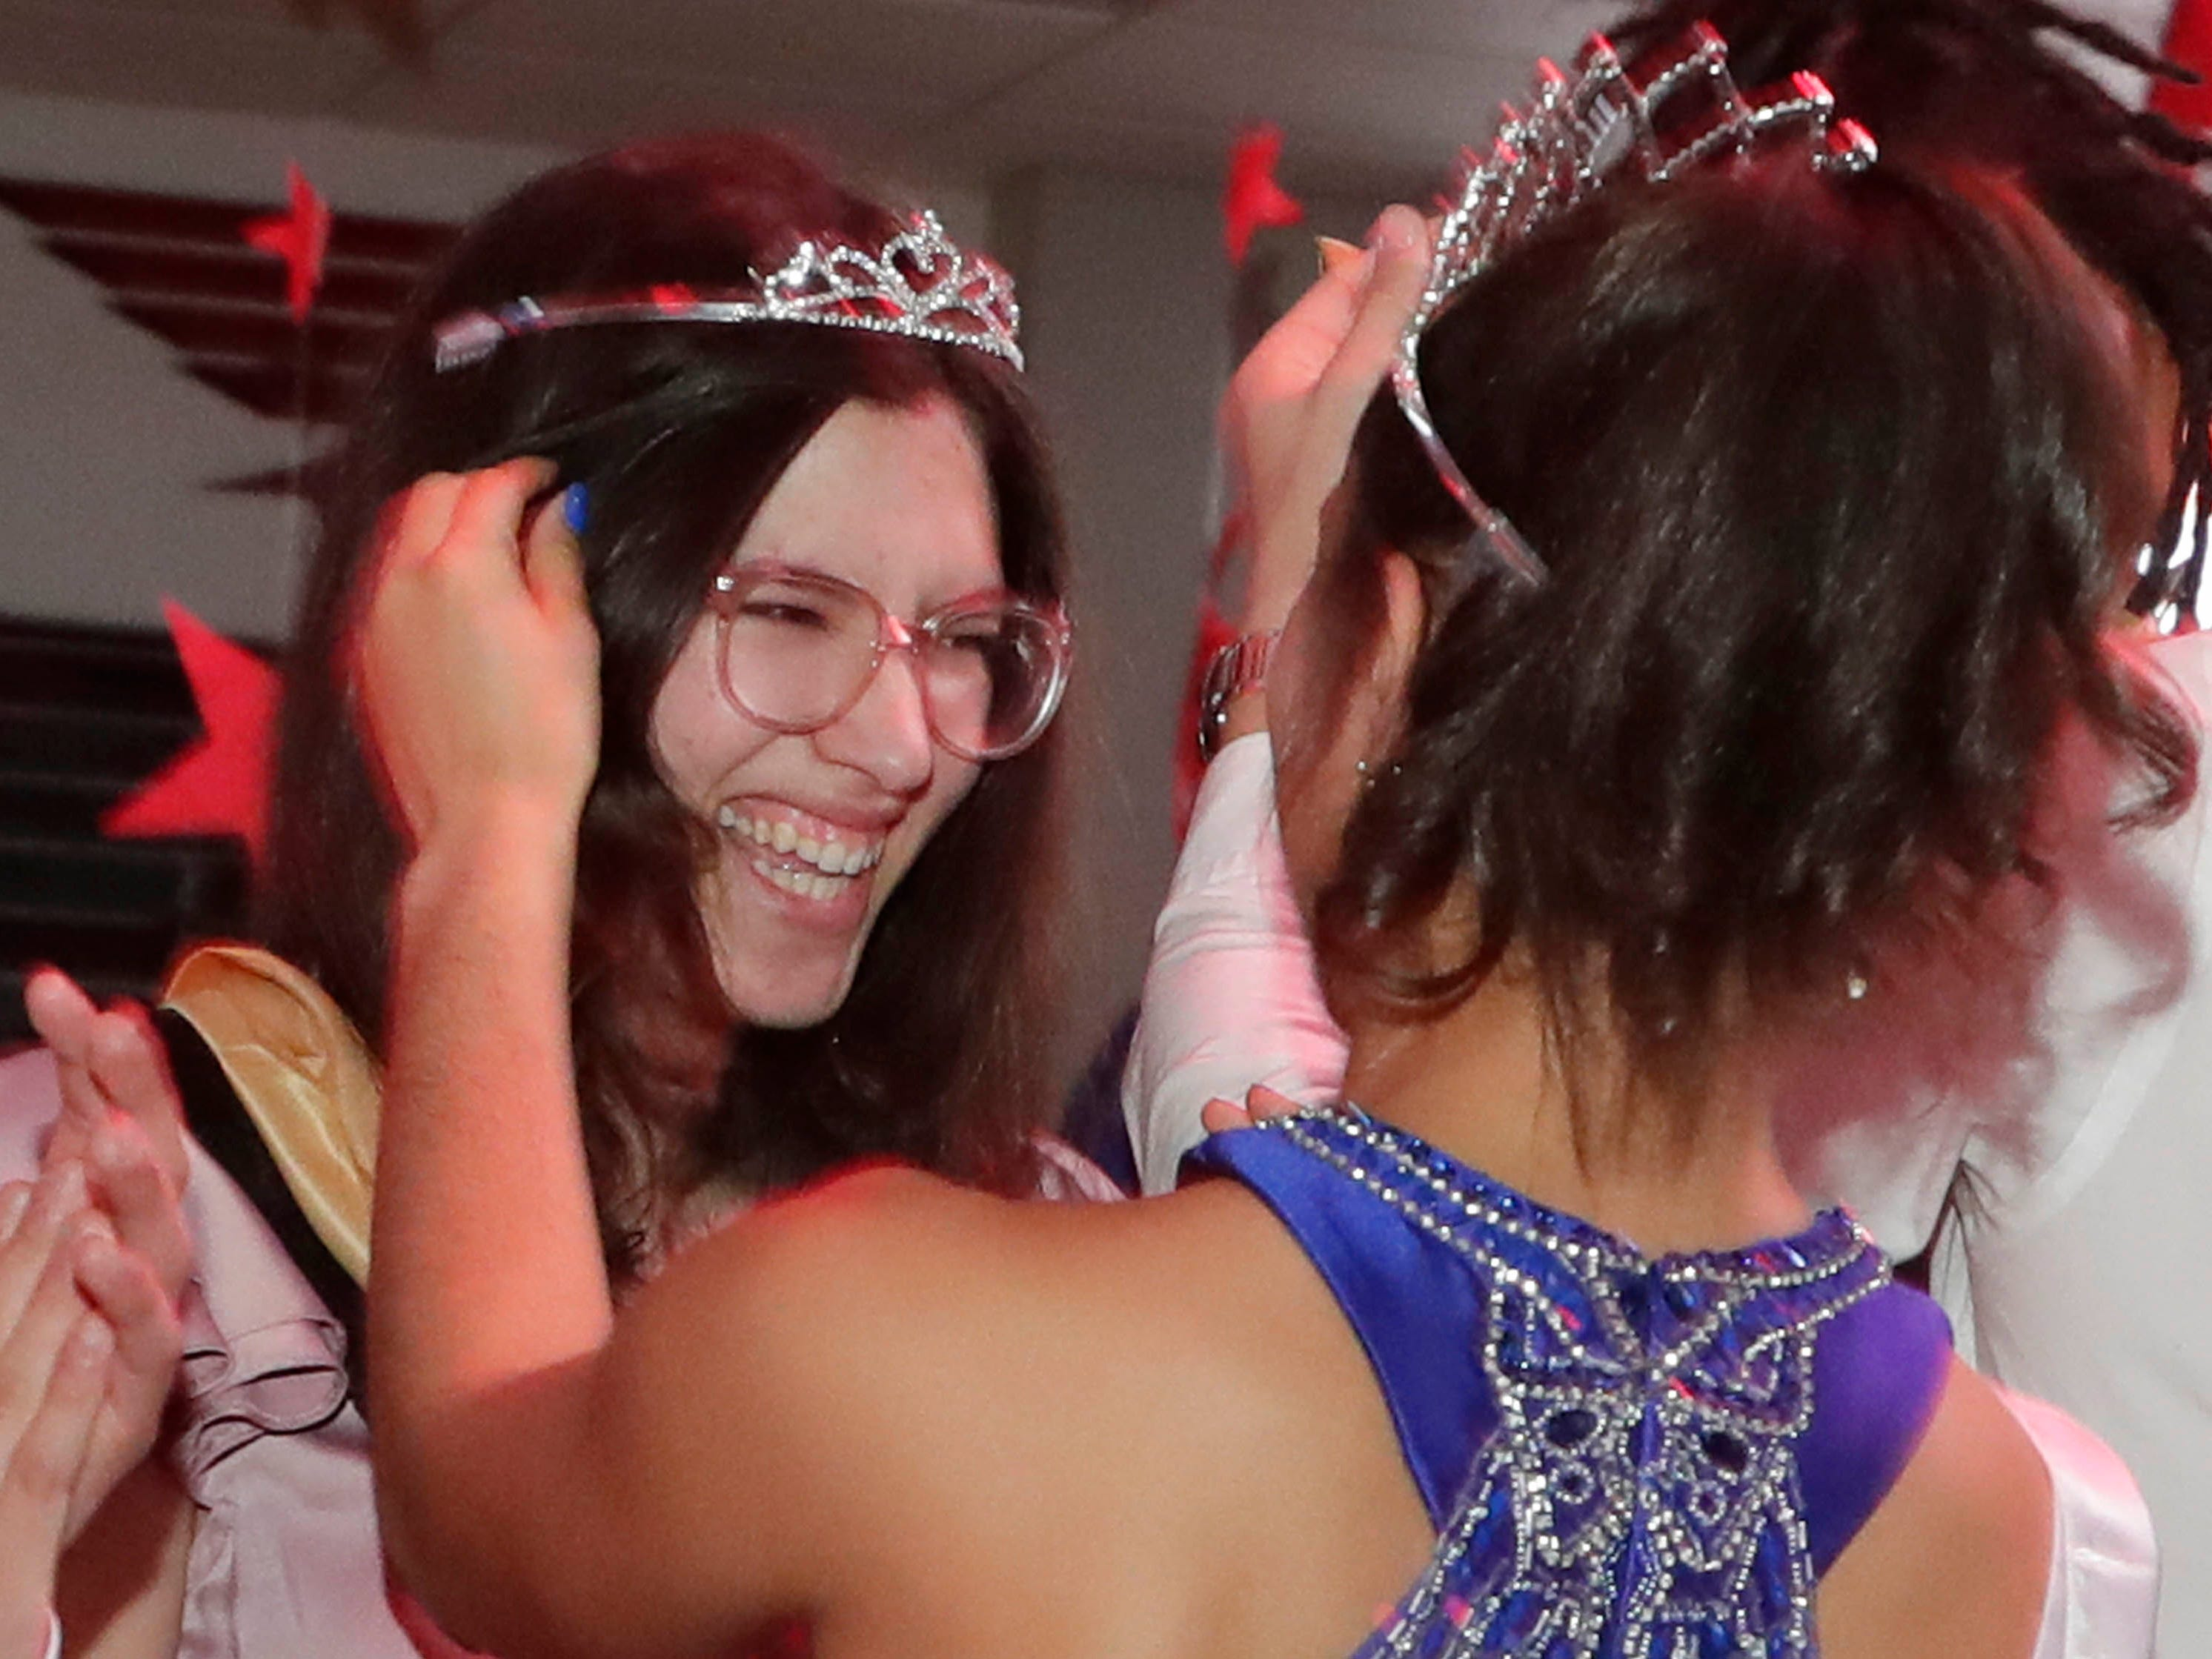 Queen Camila Trimberger smiles as she is crowned at the Sheboygan South Prom, Saturday, Mary 4, 2019, in Sheboygan, Wis.